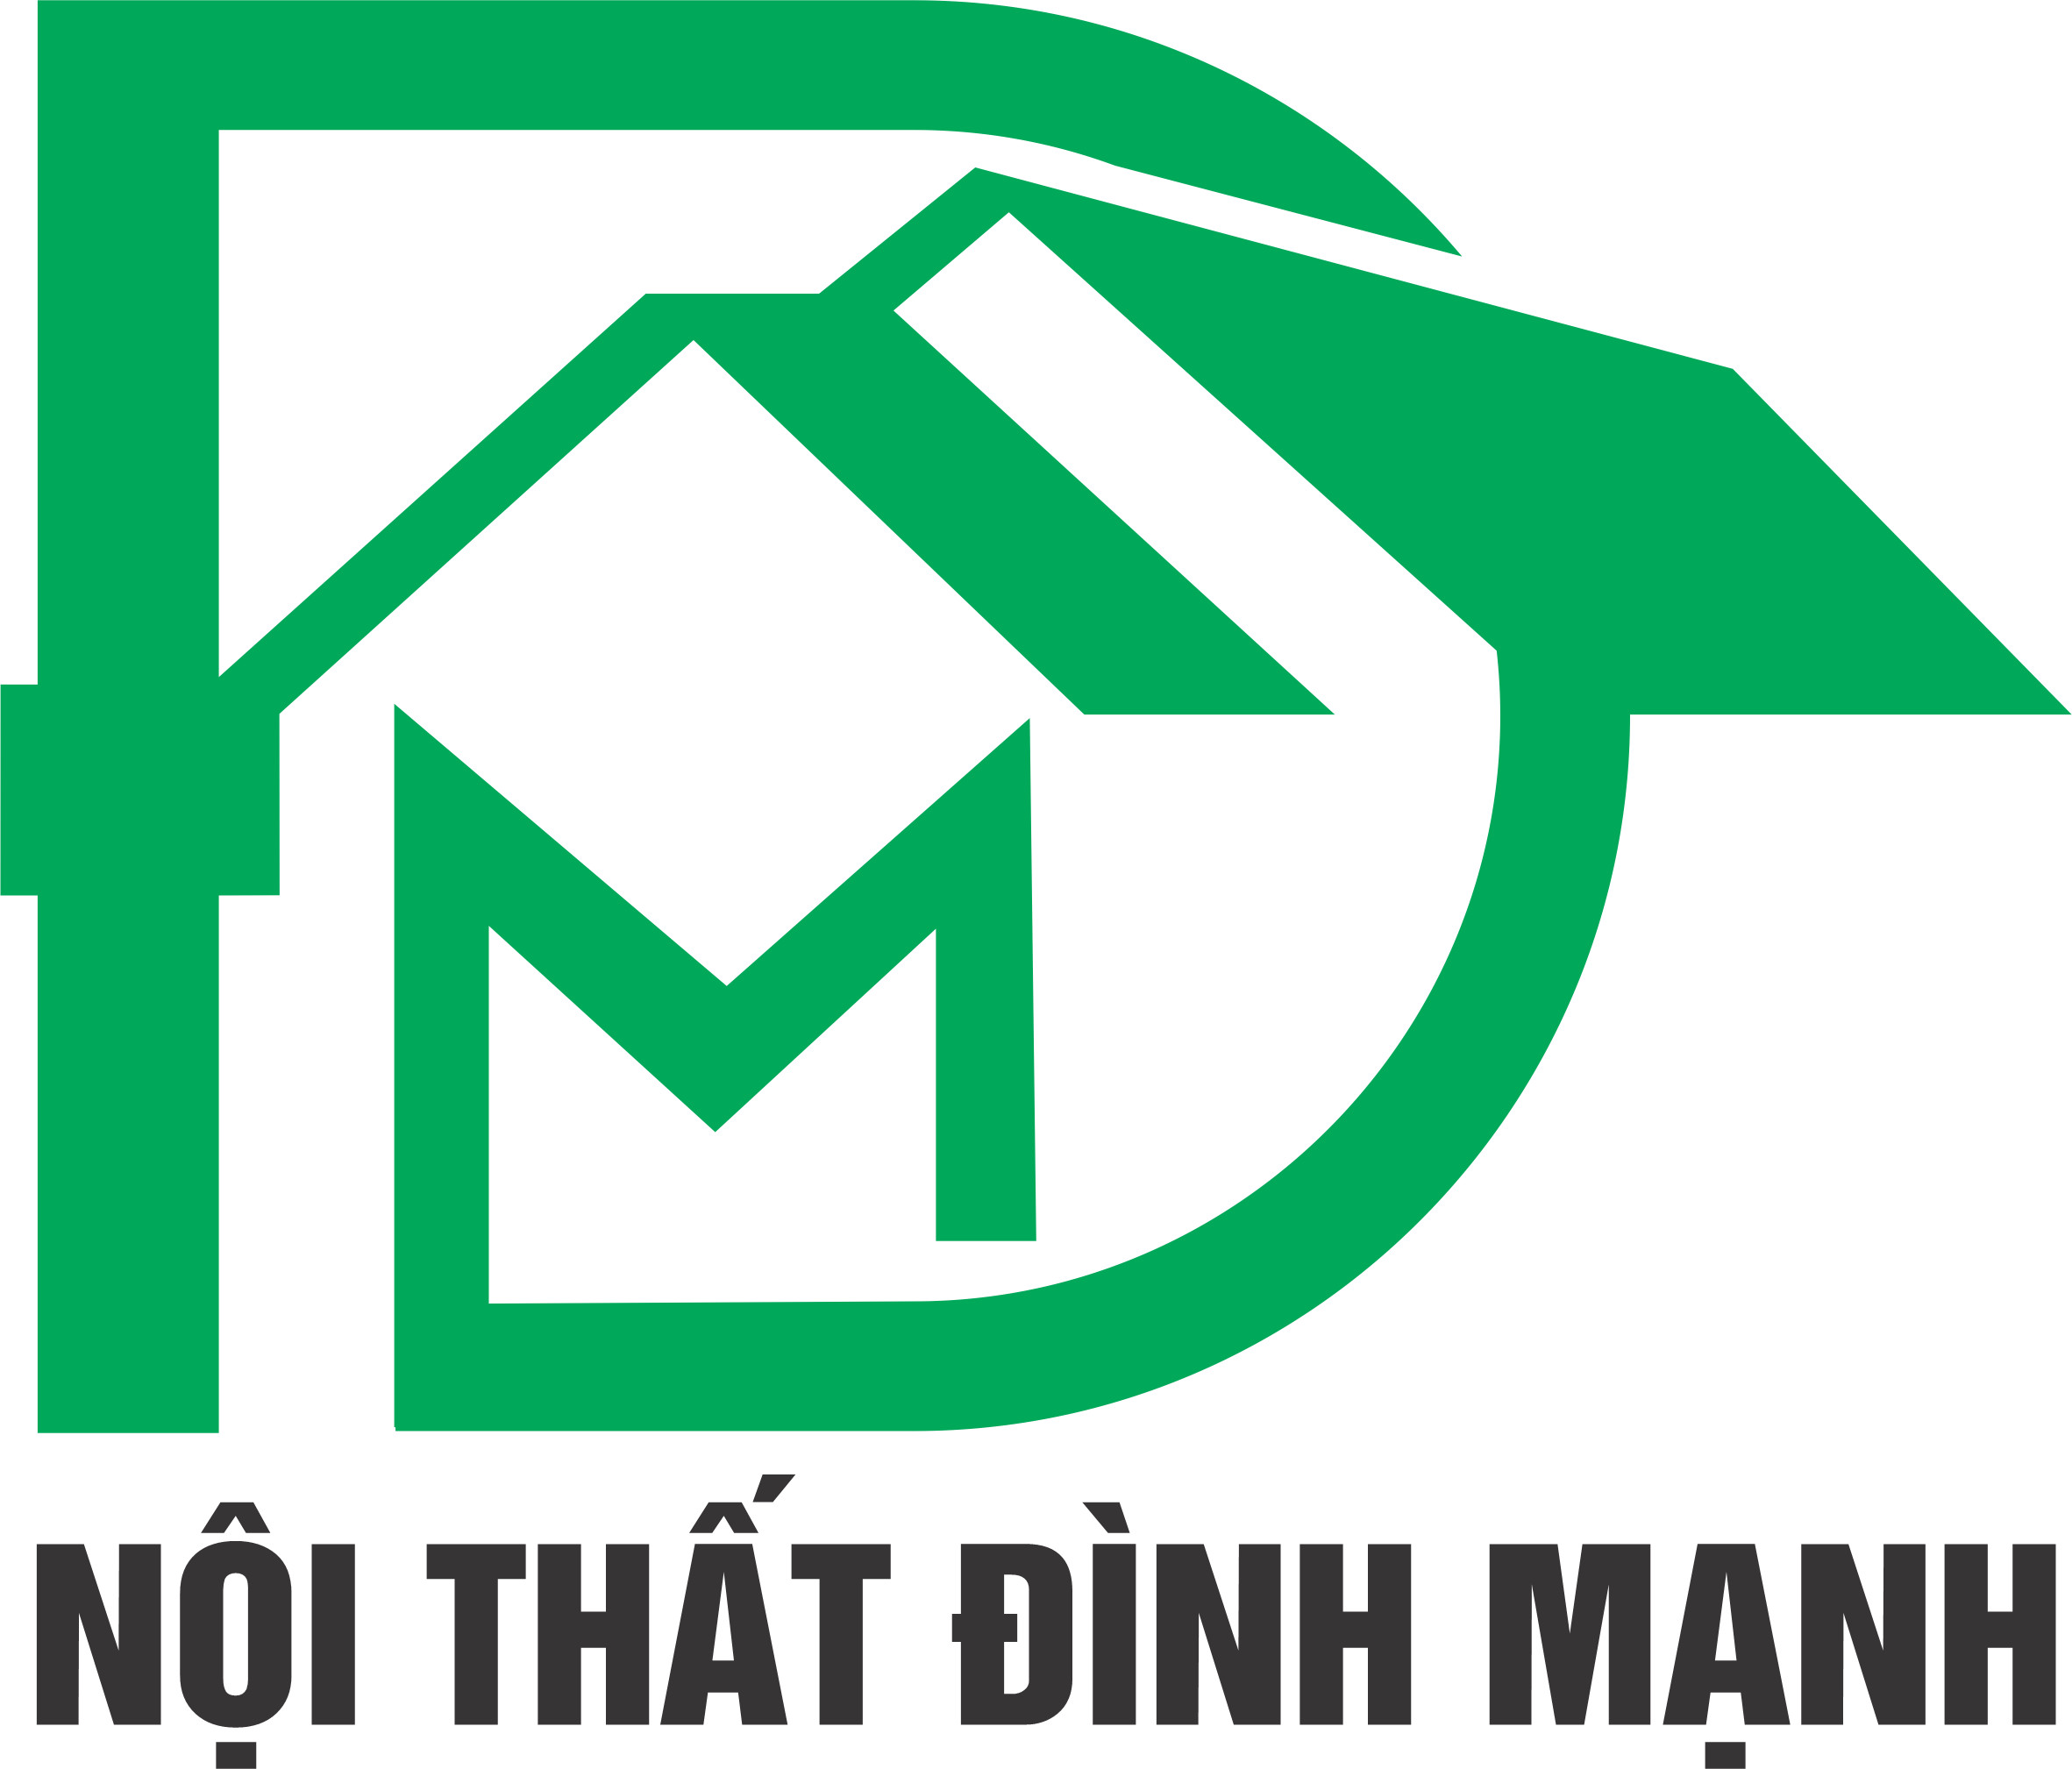 Manh Dinh Plywood working materials